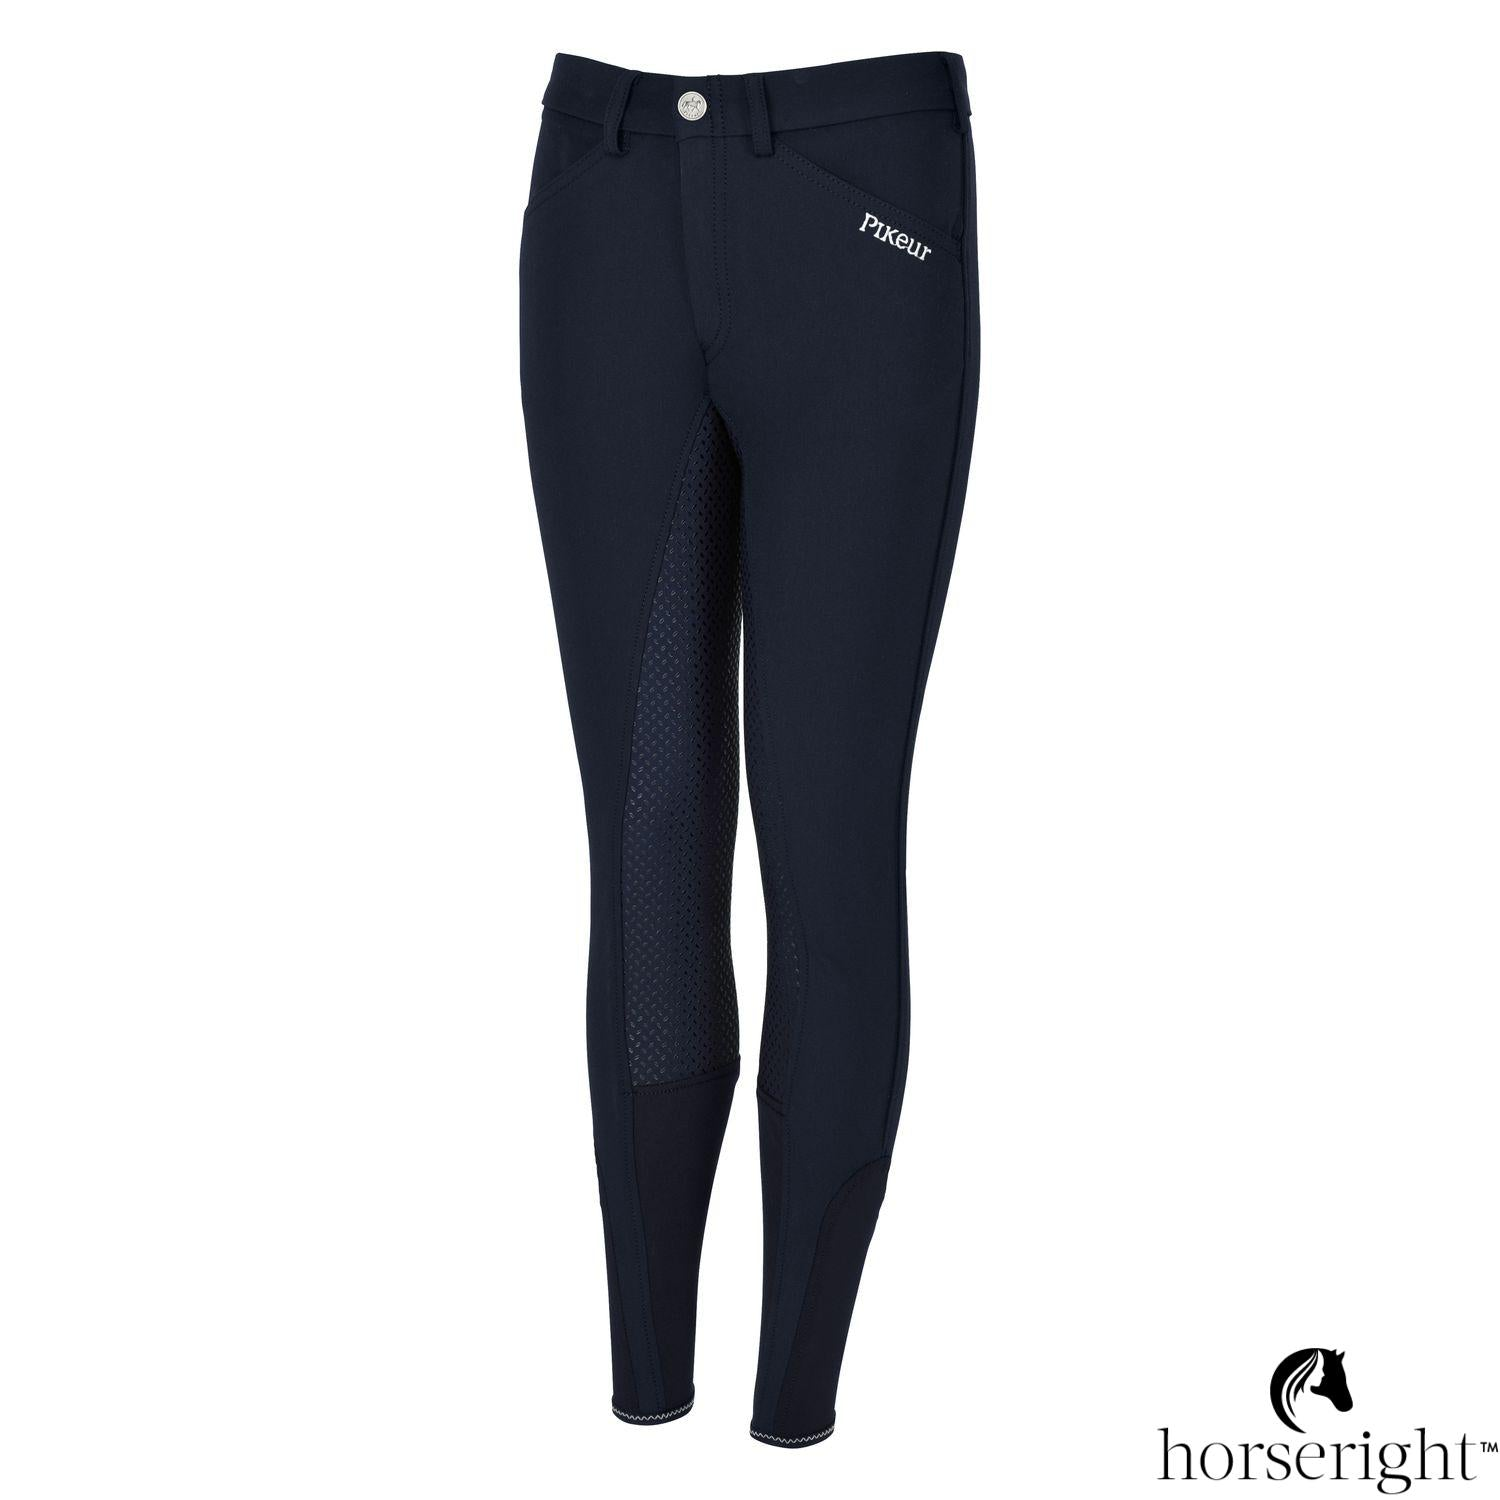 Pikeur Braddy Grip Children's Jodhpurs